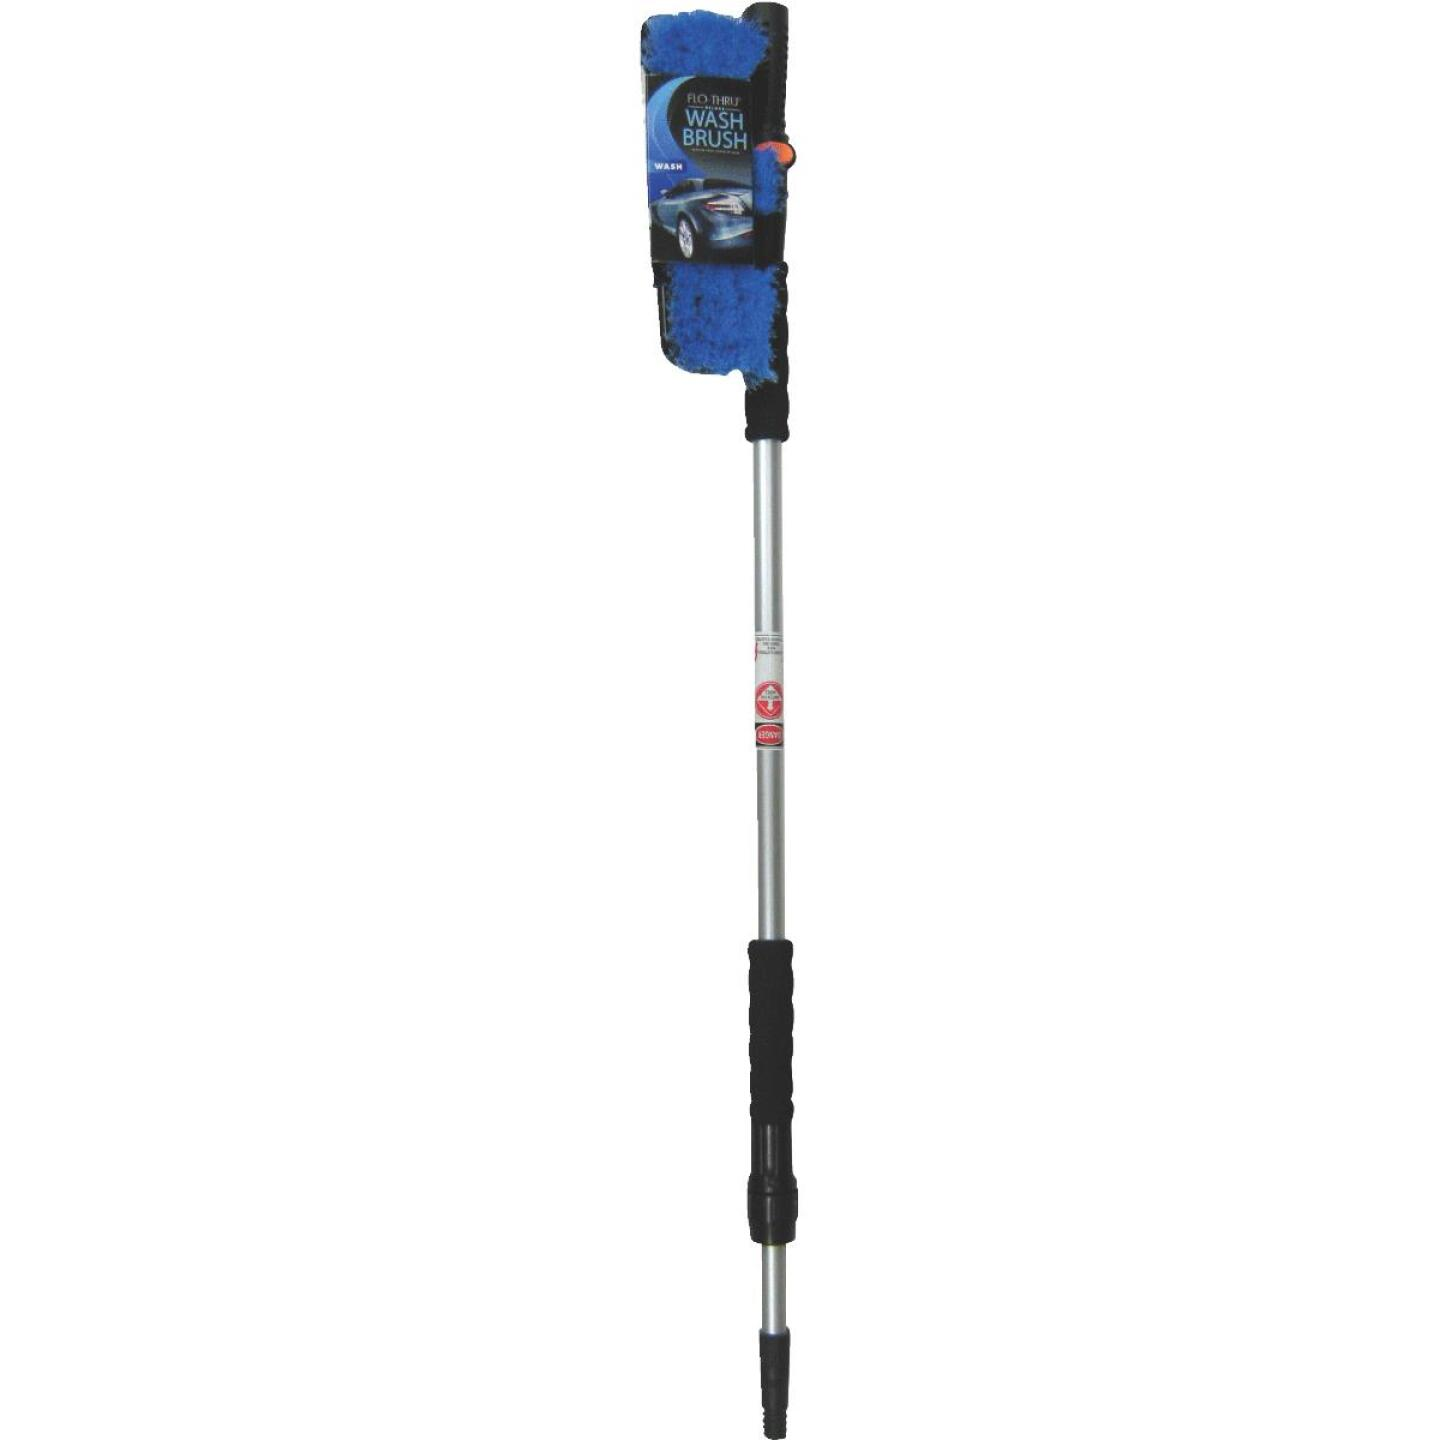 Viking 10 In. Deluxe Flo-Thru Wash Brush with 40 In. to 66 In. Telescoping Handle Image 1